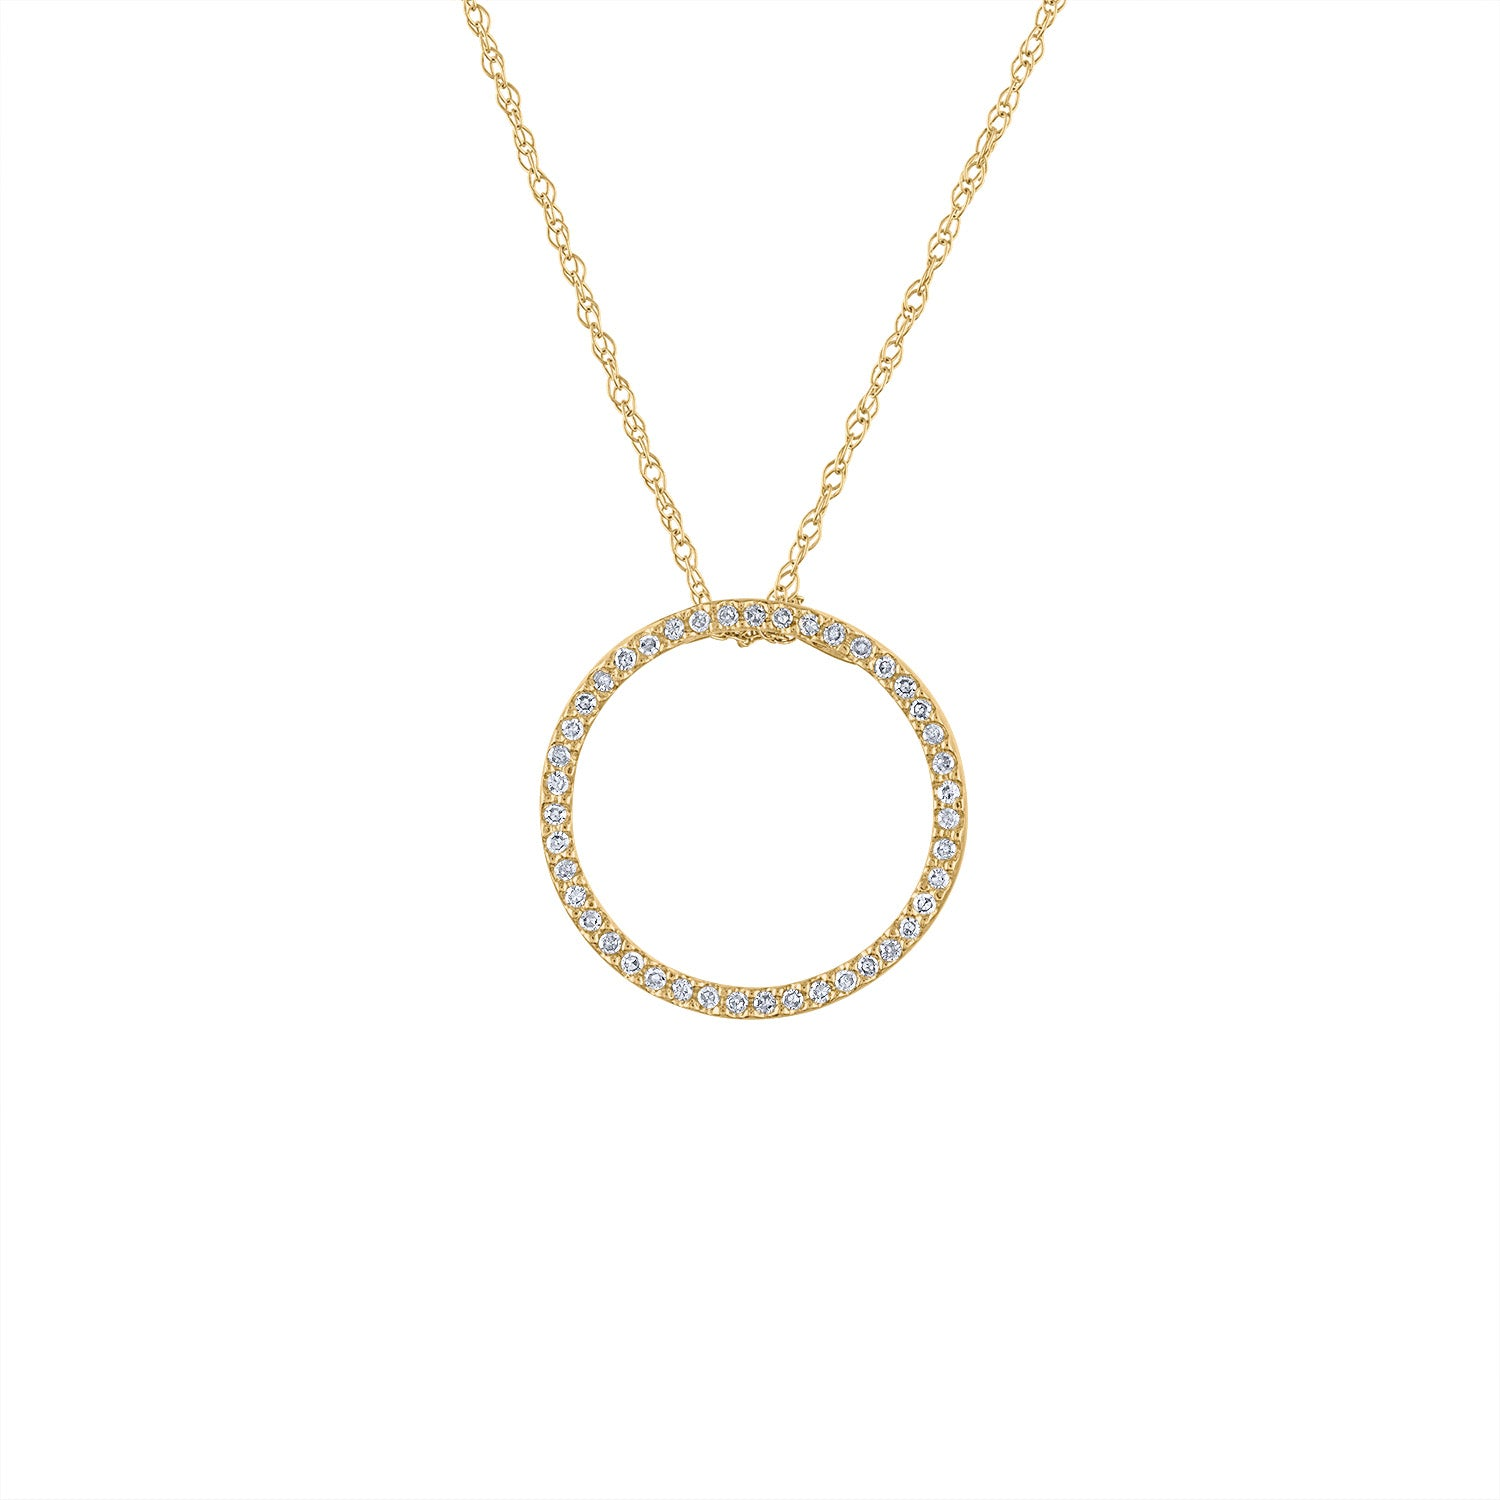 14KT GOLD MEDIUM DIAMOND OPEN CIRCLE NECKLACE